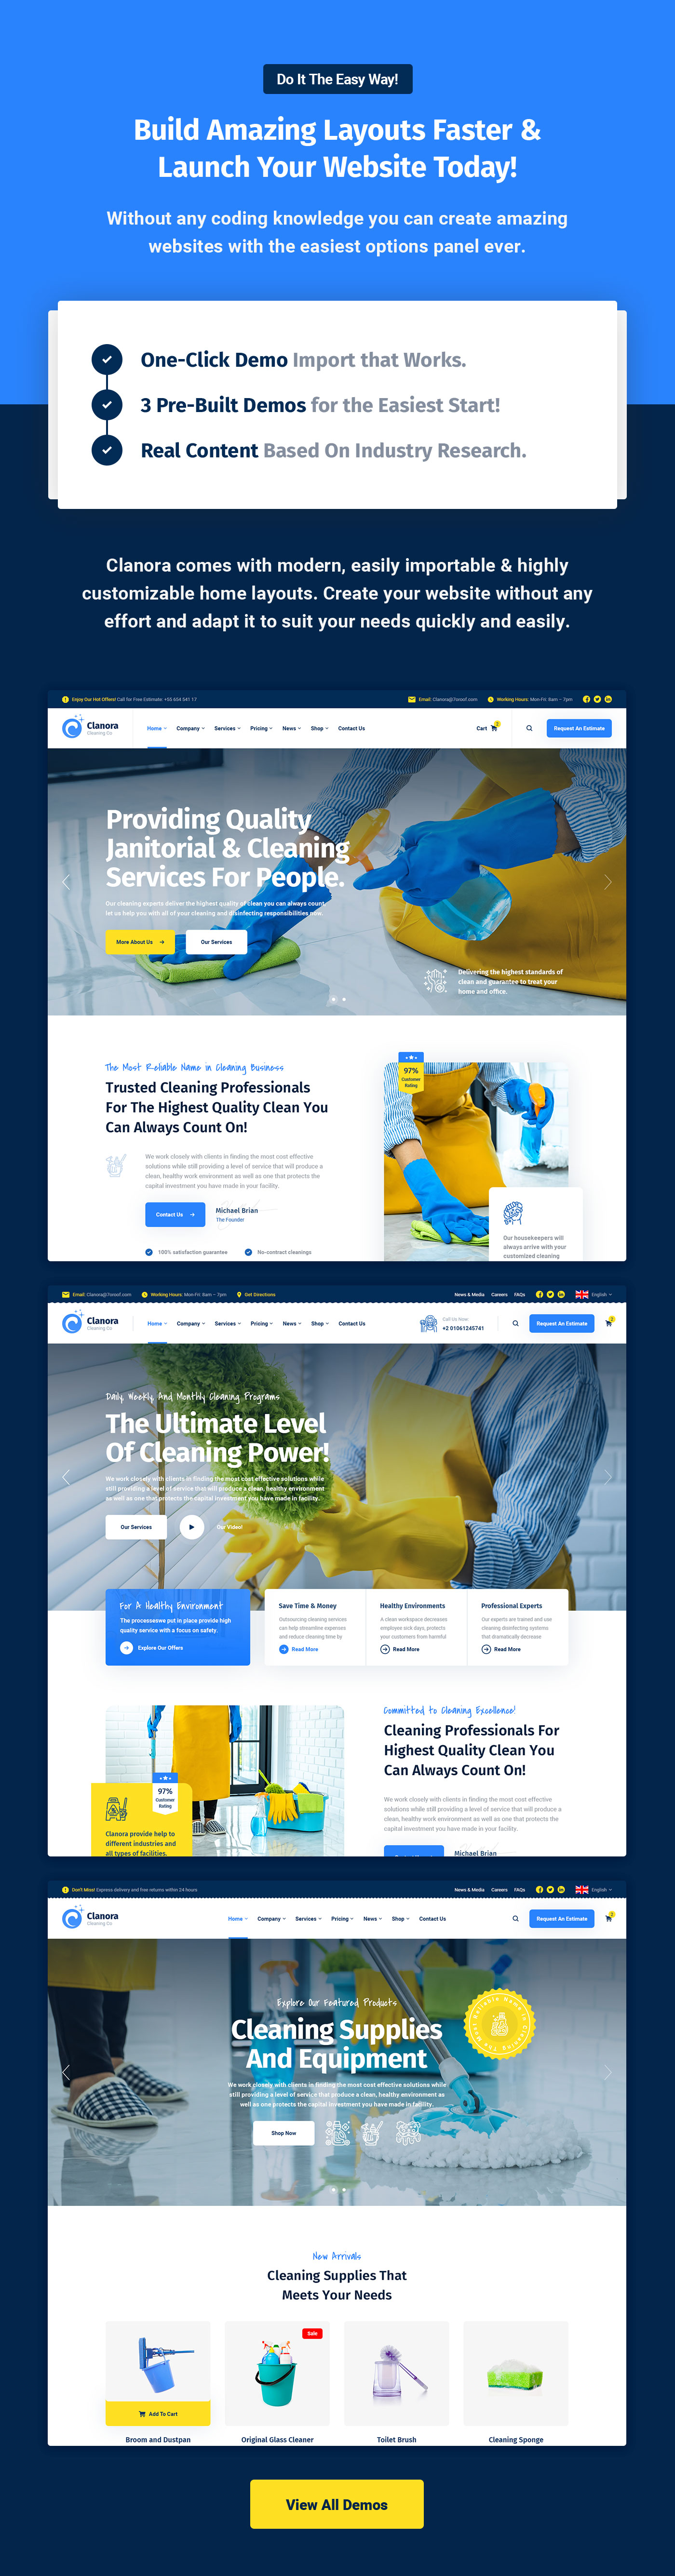 Clanora - Cleaning Services WordPress Theme - 5